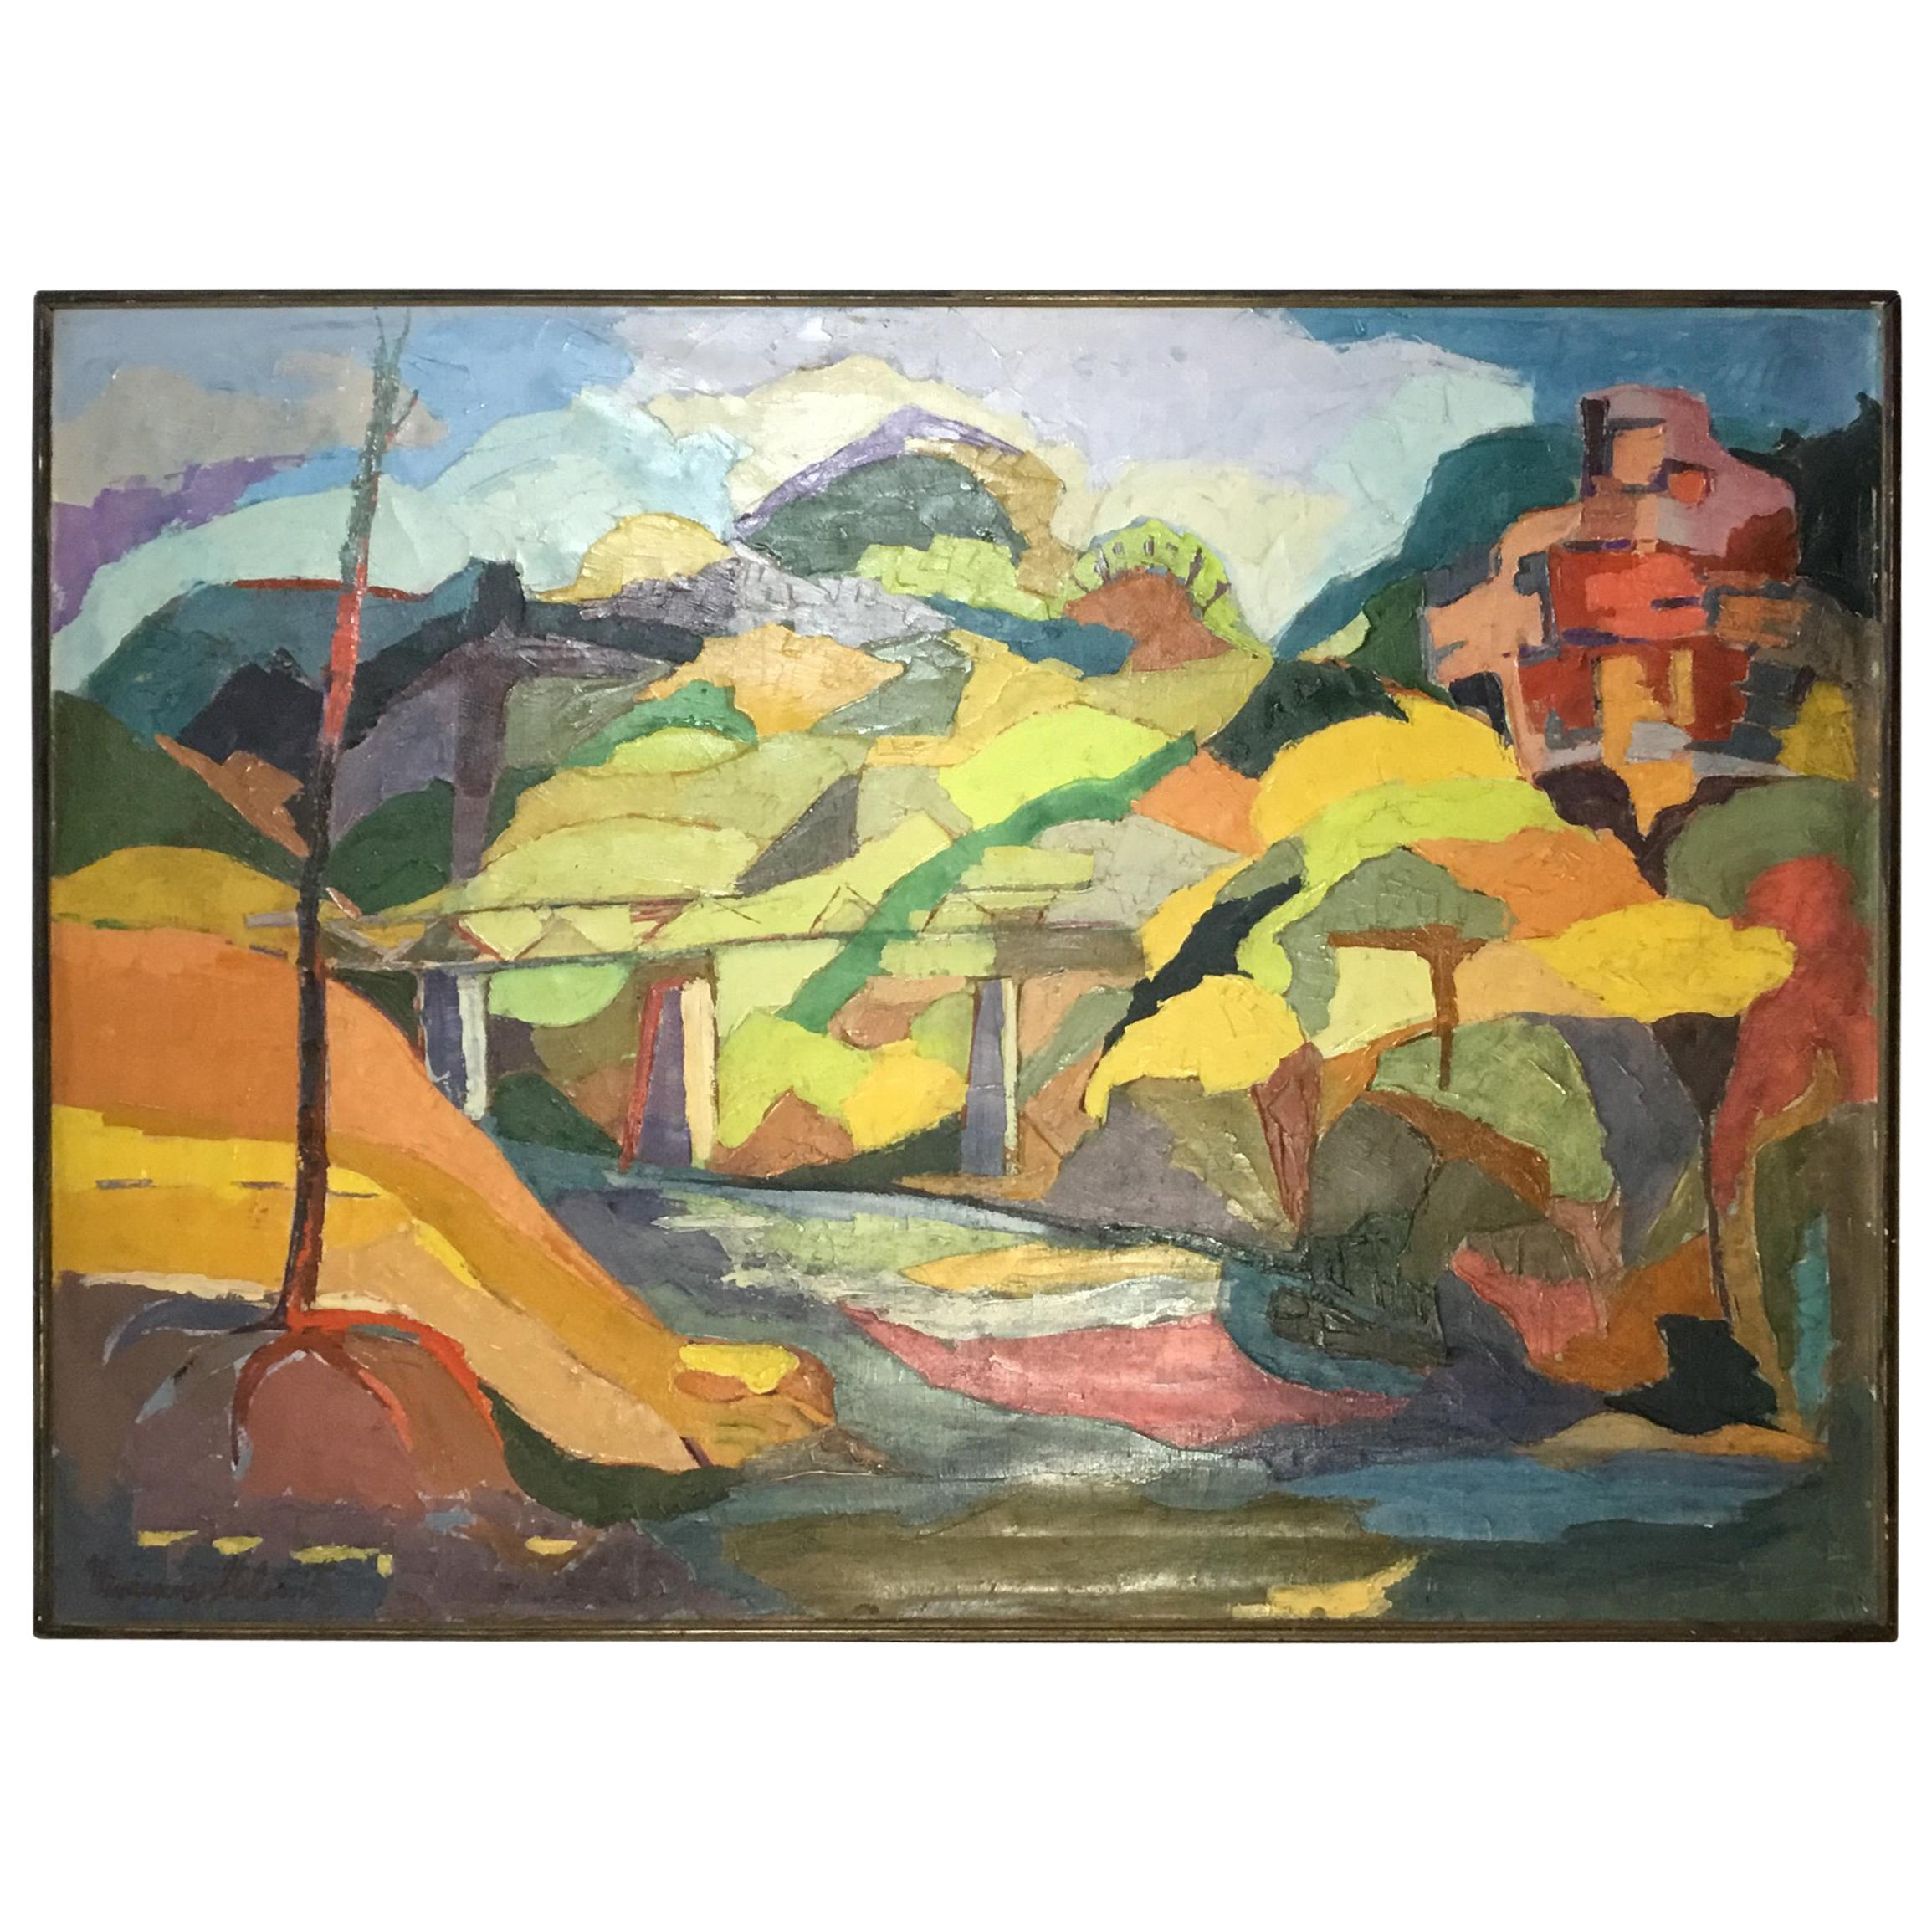 Vintage Oil on Canvas Painting by Vivienne Galowitz